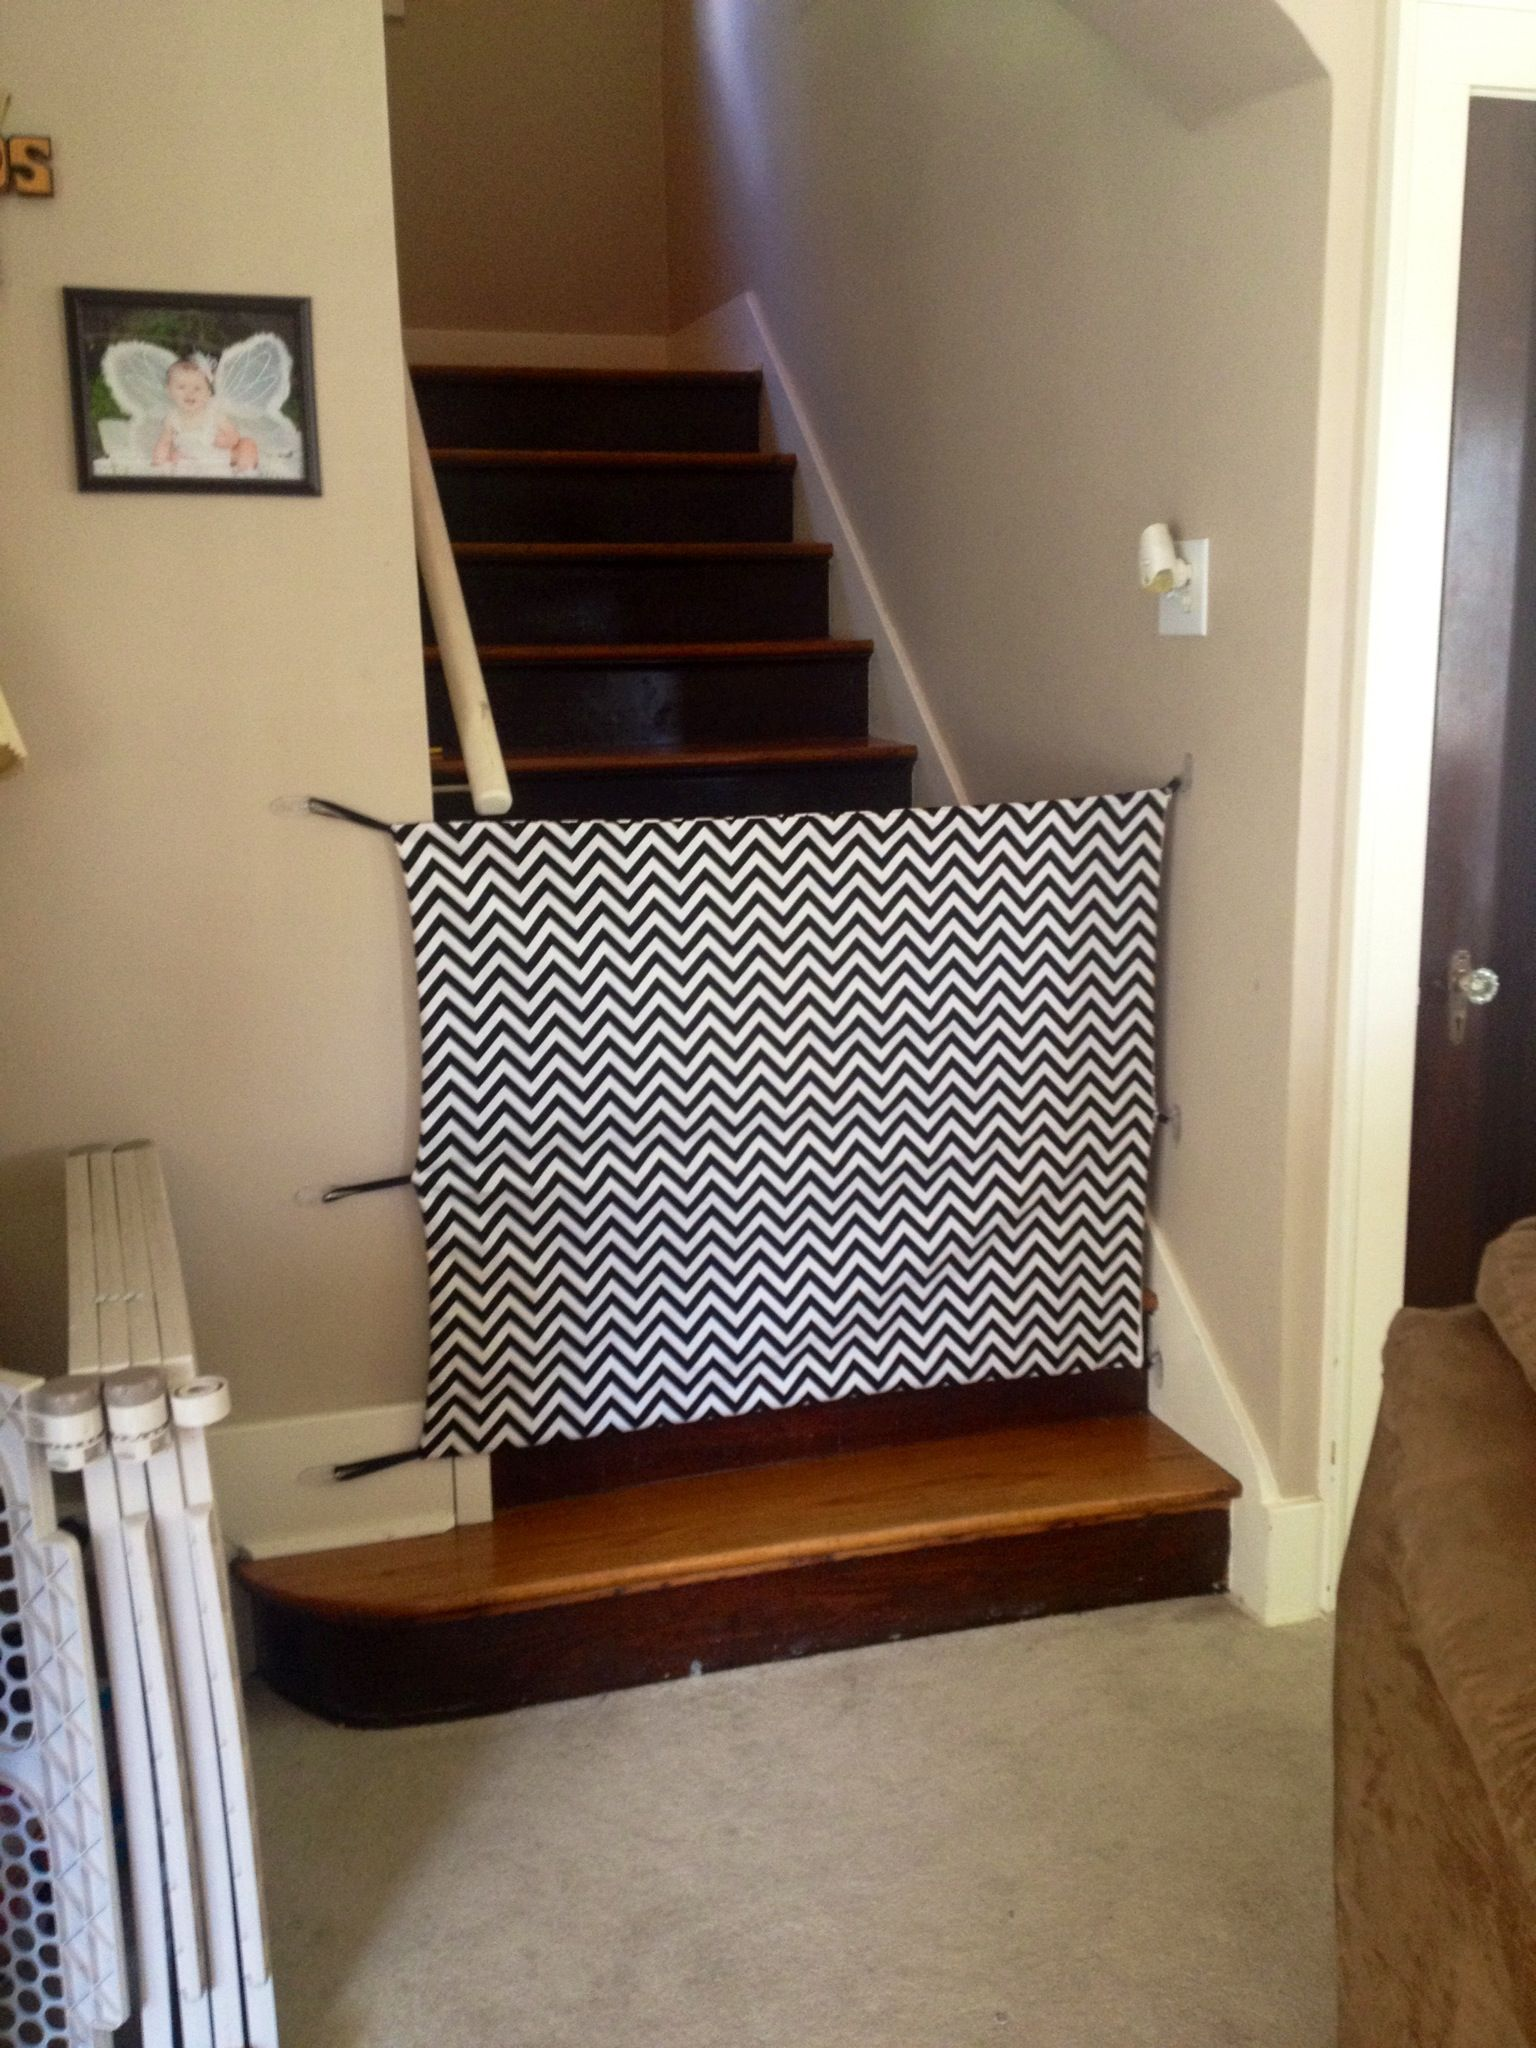 Diy Fabric Baby Gate Cost Around 30 Total And It Looks Sooo Much Better Than